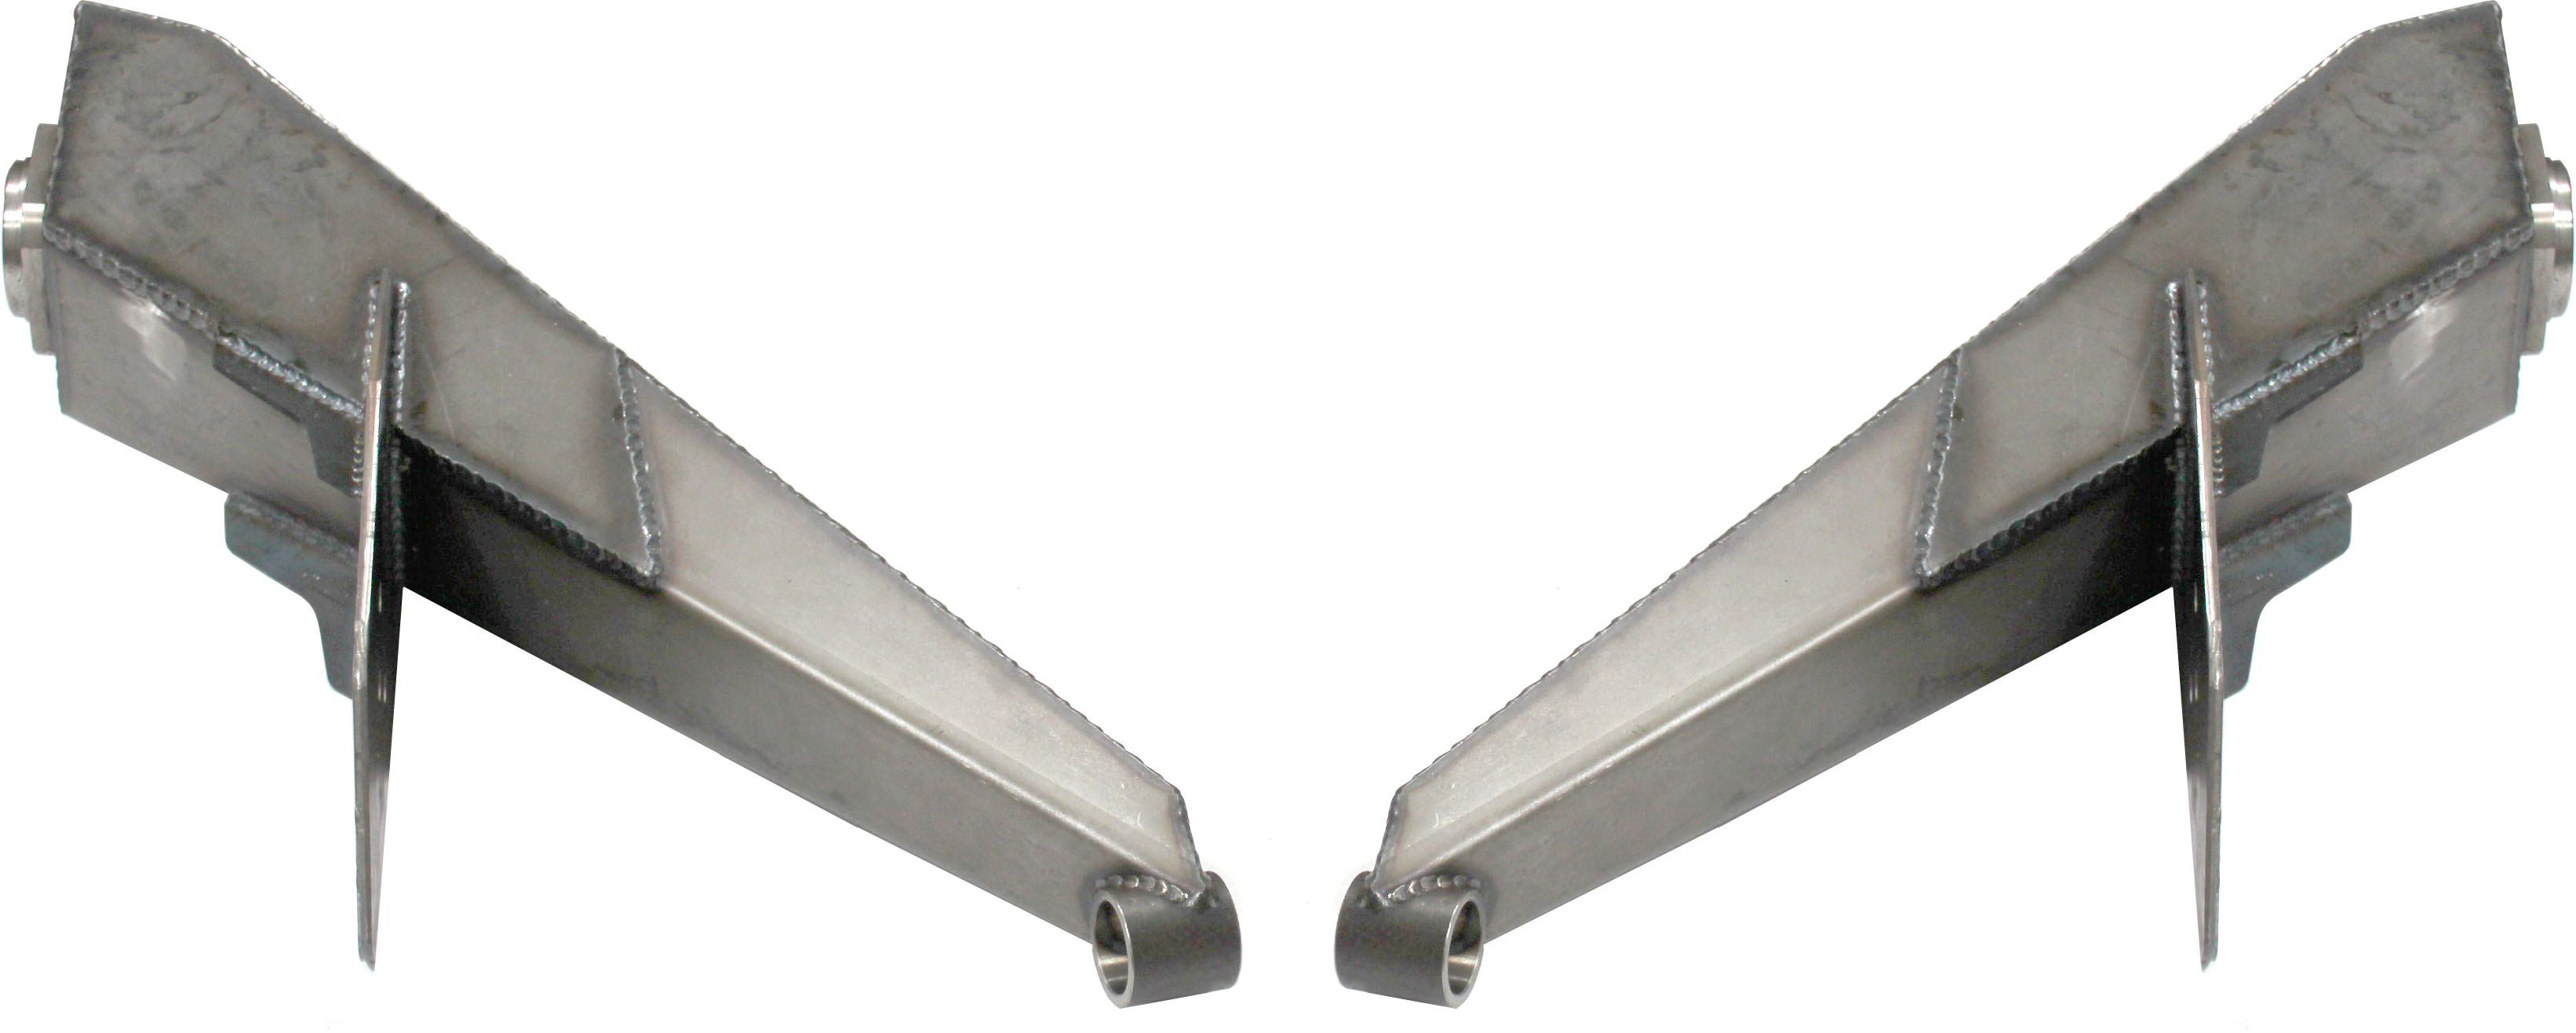 3x3 Trailing Arm: Image May Have Been Reduced In Size  Click Image